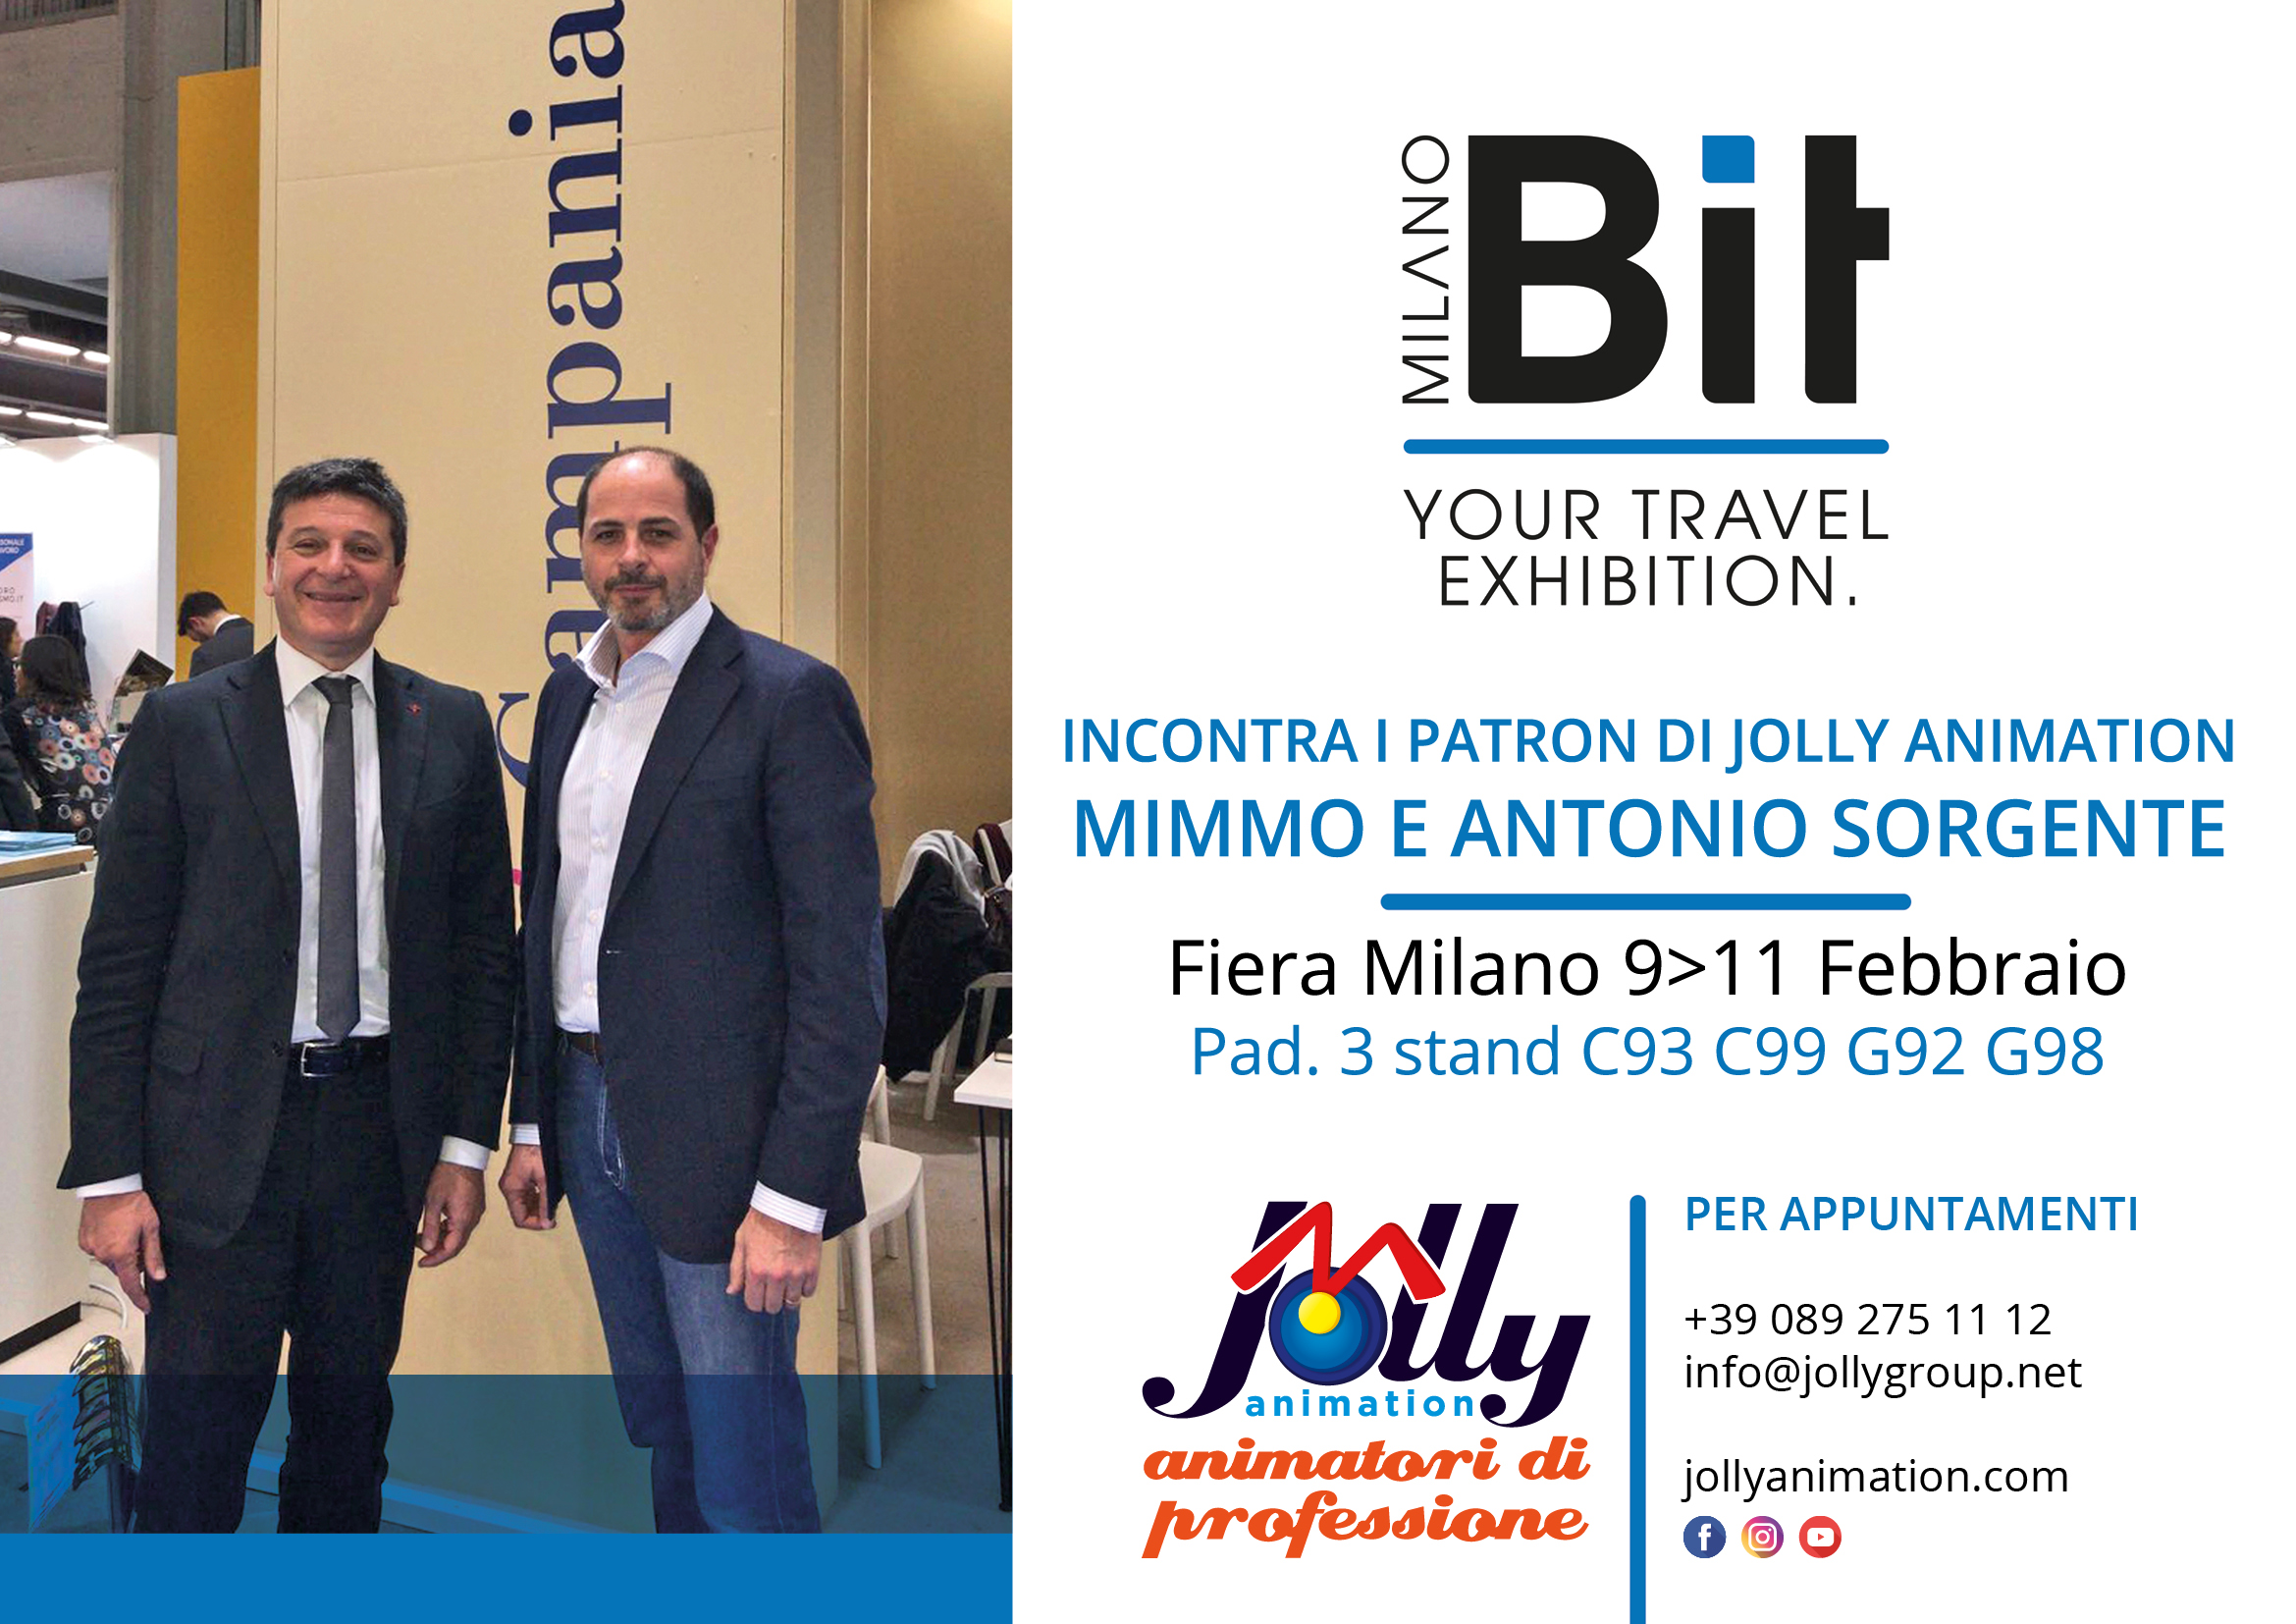 In Bit i patron di Jolly Animation Mimmo ed Antonio Sorgente